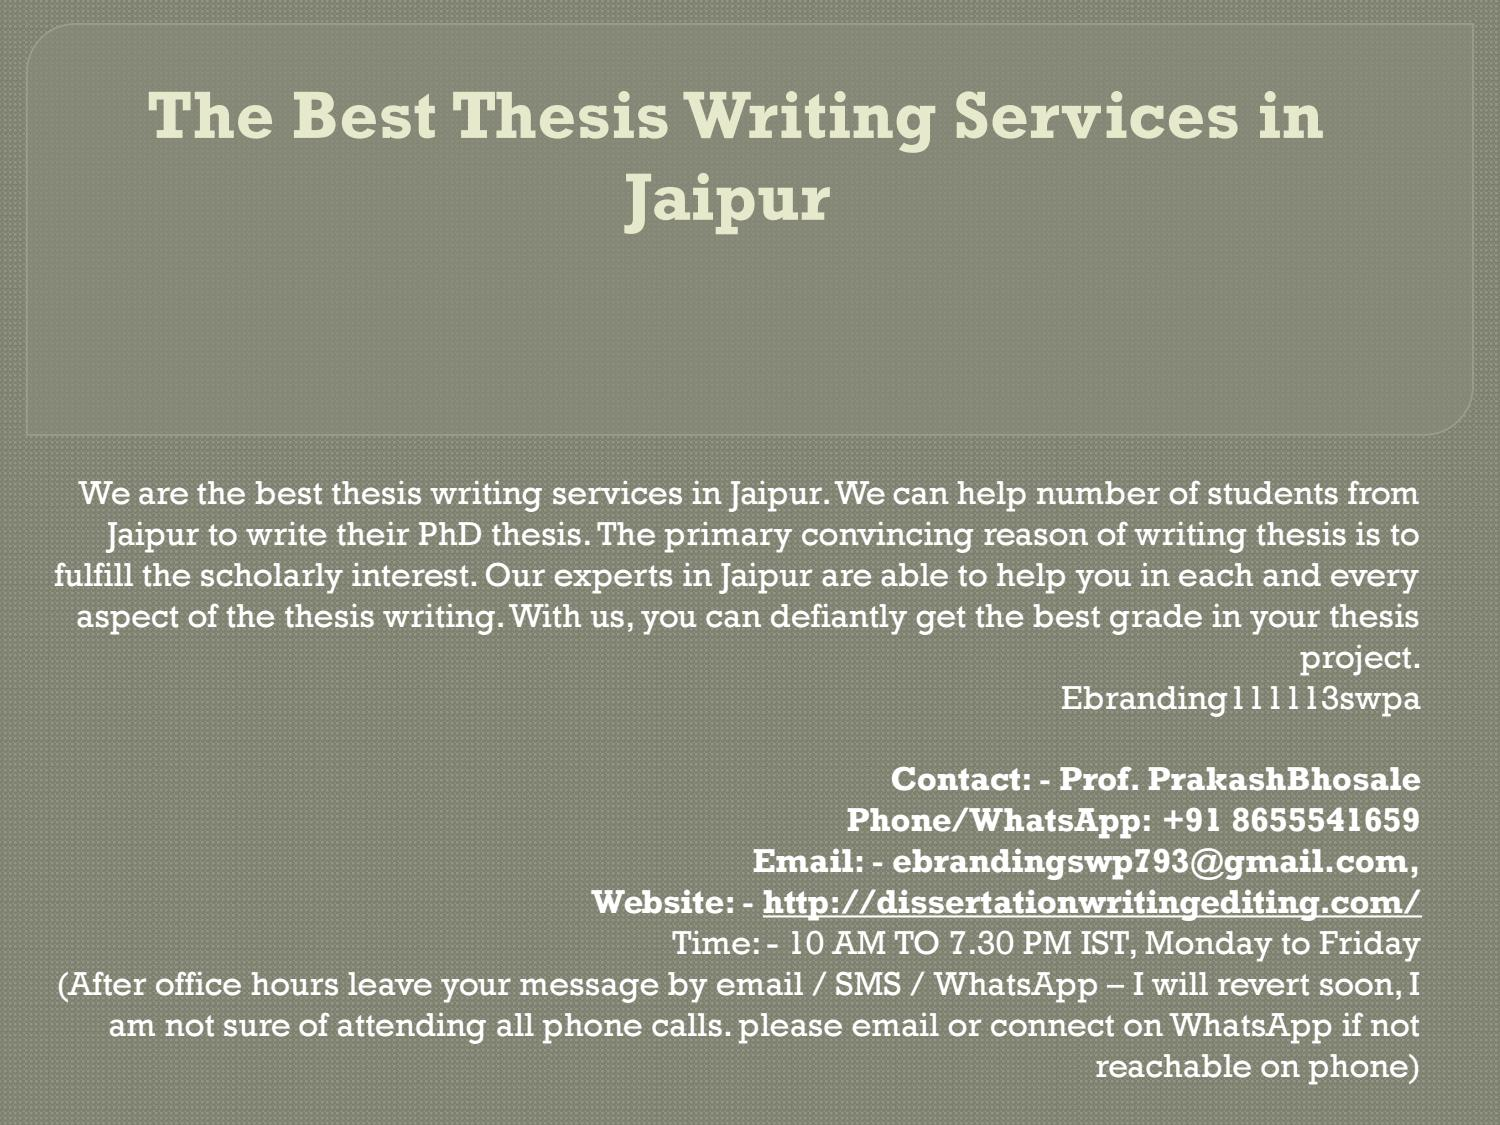 thesis writing in jaipur